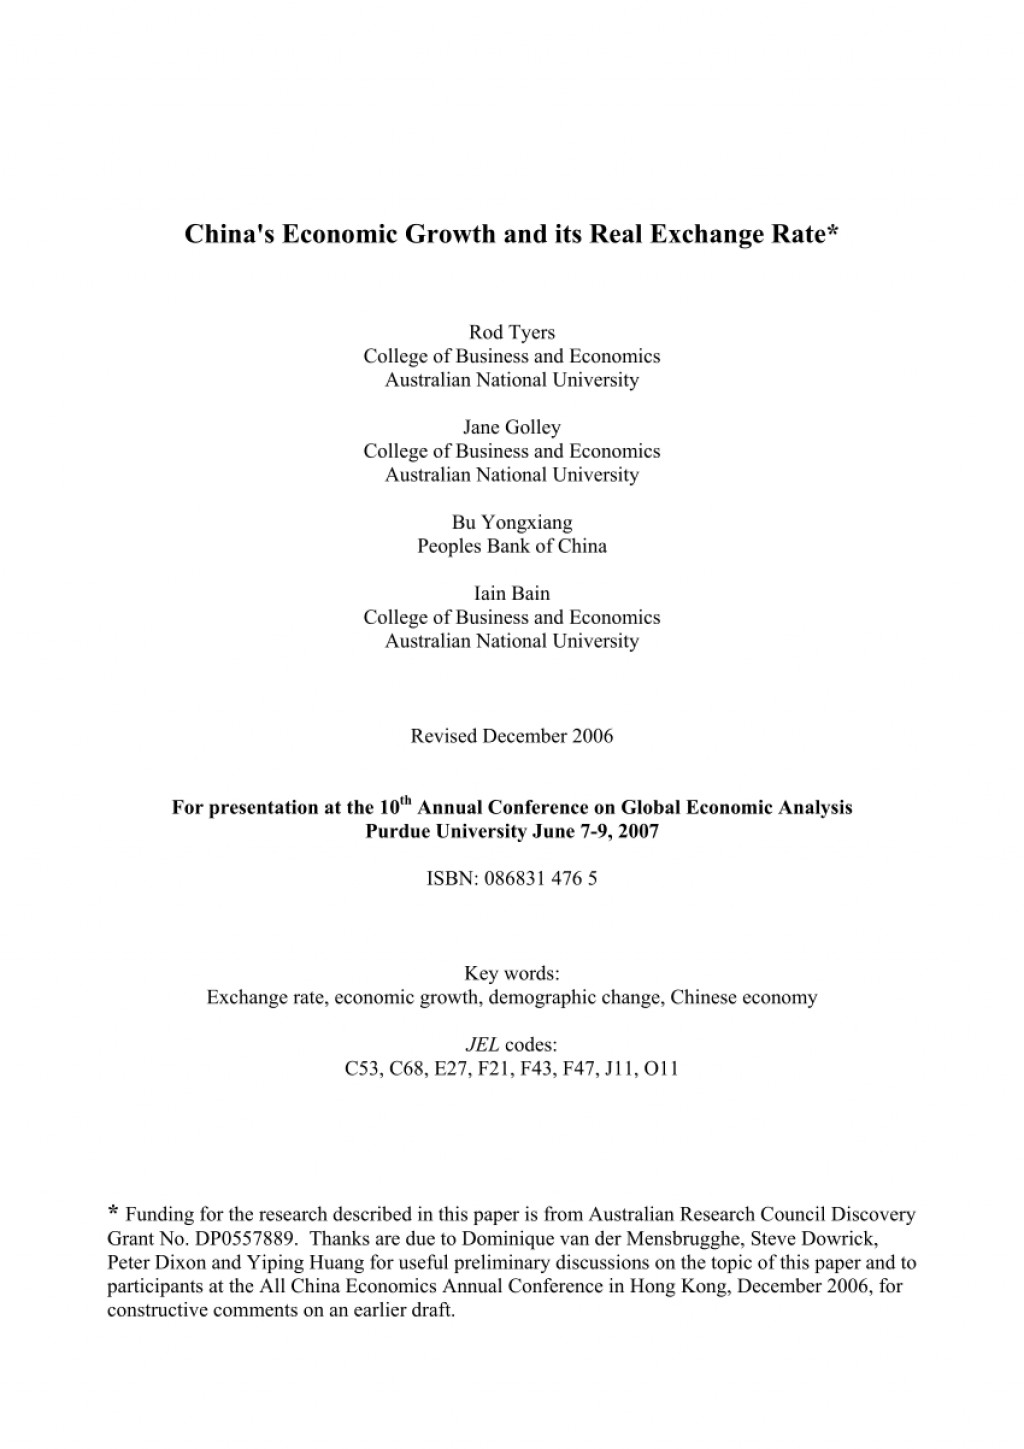 002 Largepreview Research Paper Chinese Economy Awful Topics Large